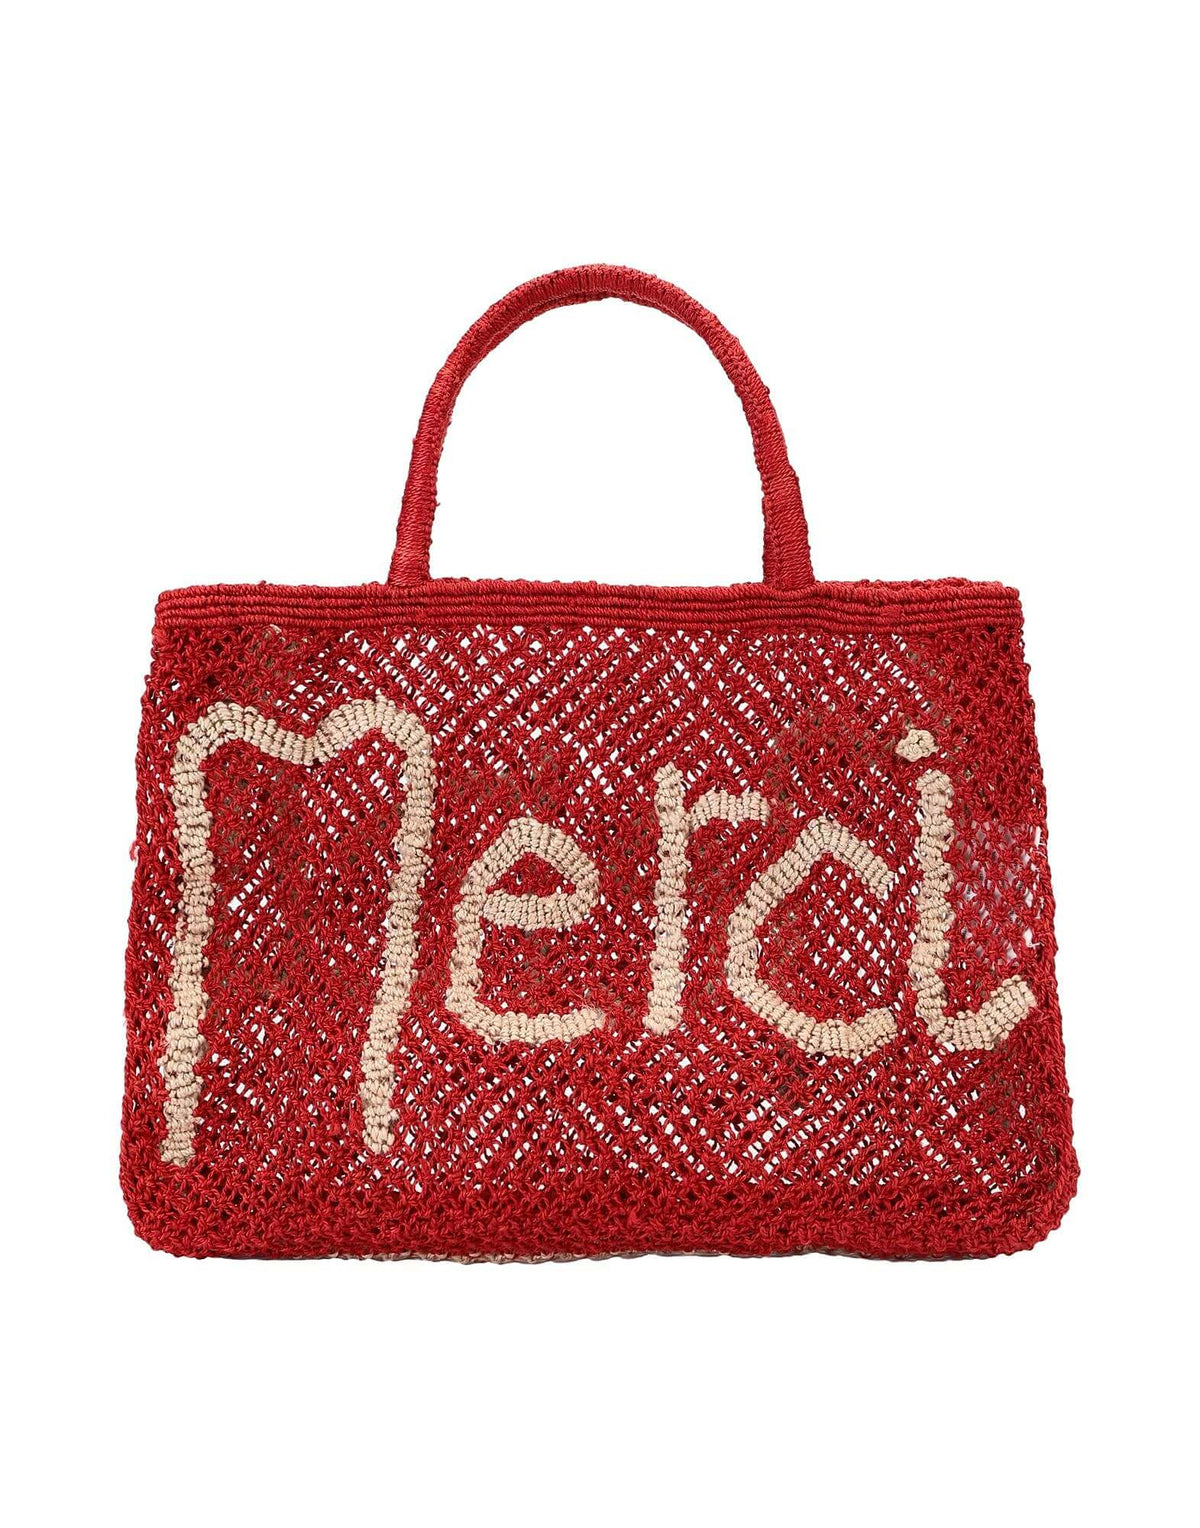 TJ Merci beach bag